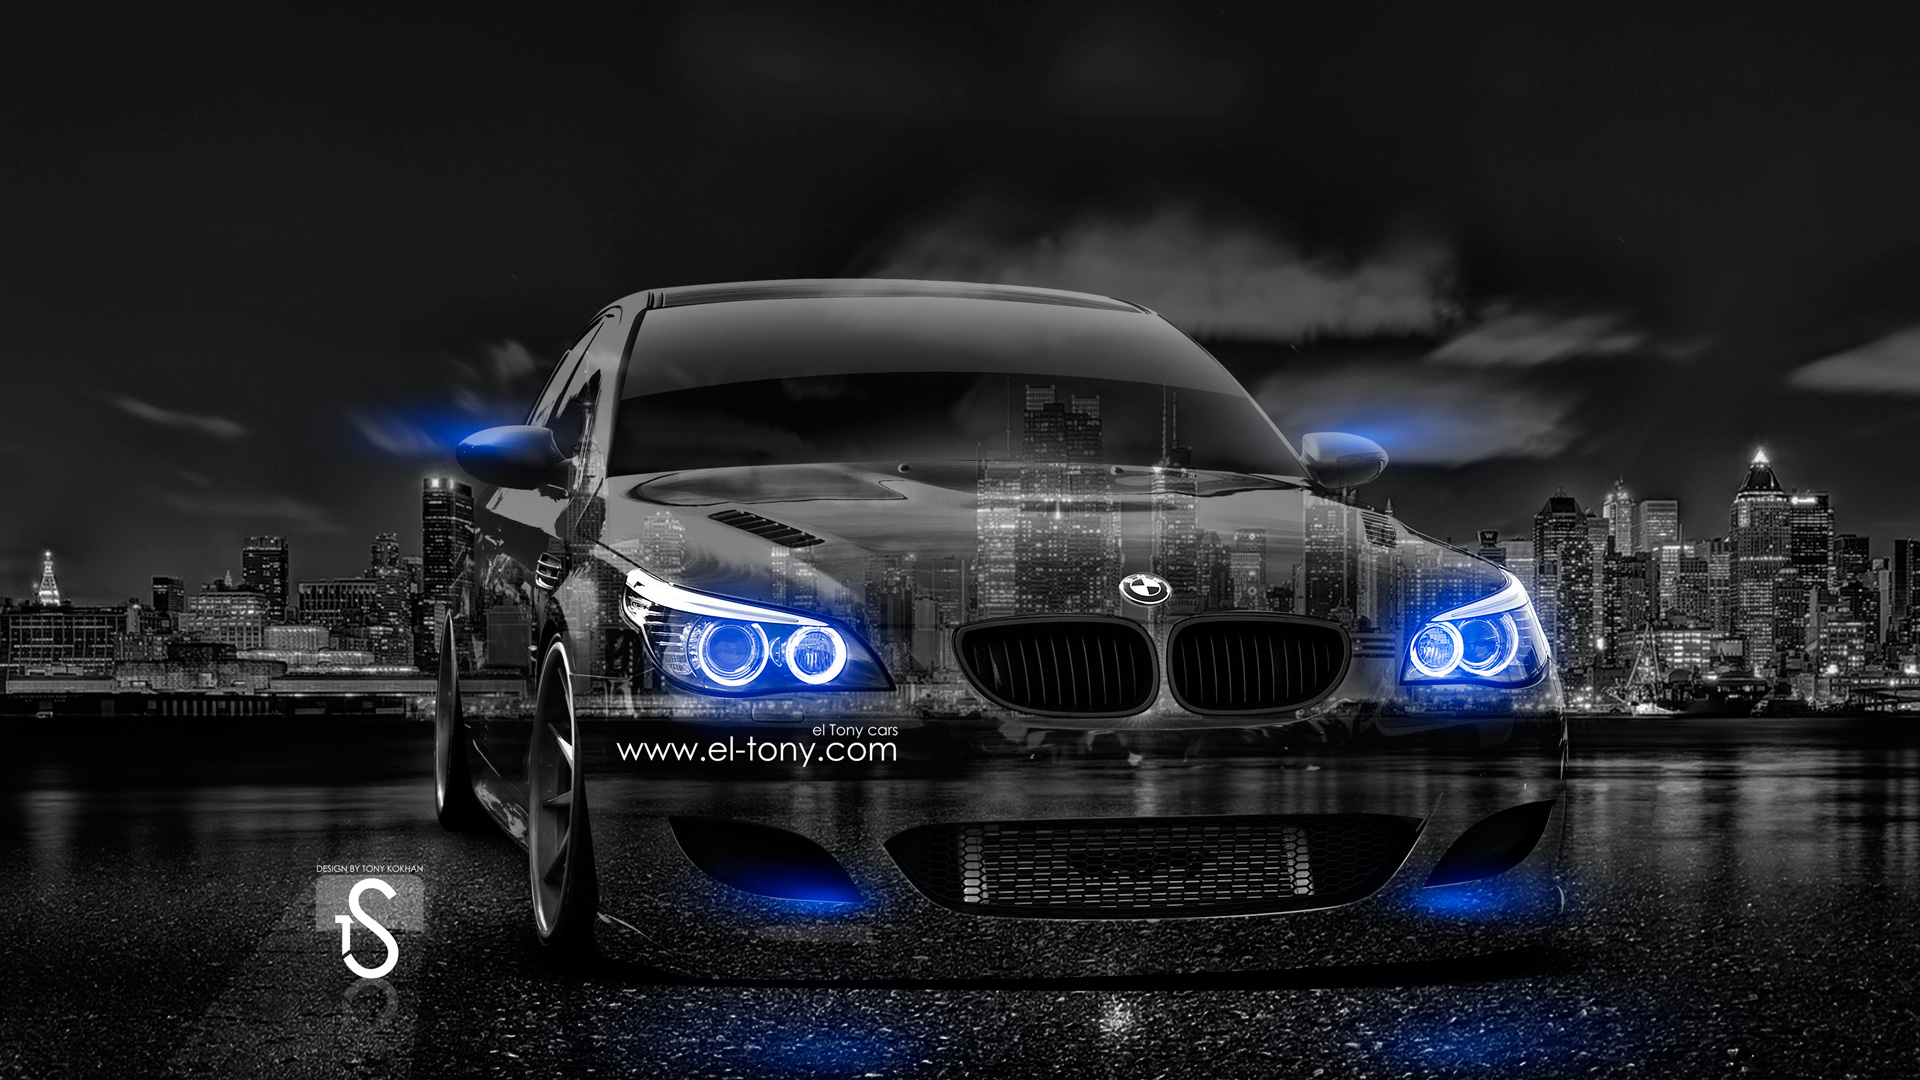 Superbe BMW M5 E60 Crystal City Car 2014 Blue